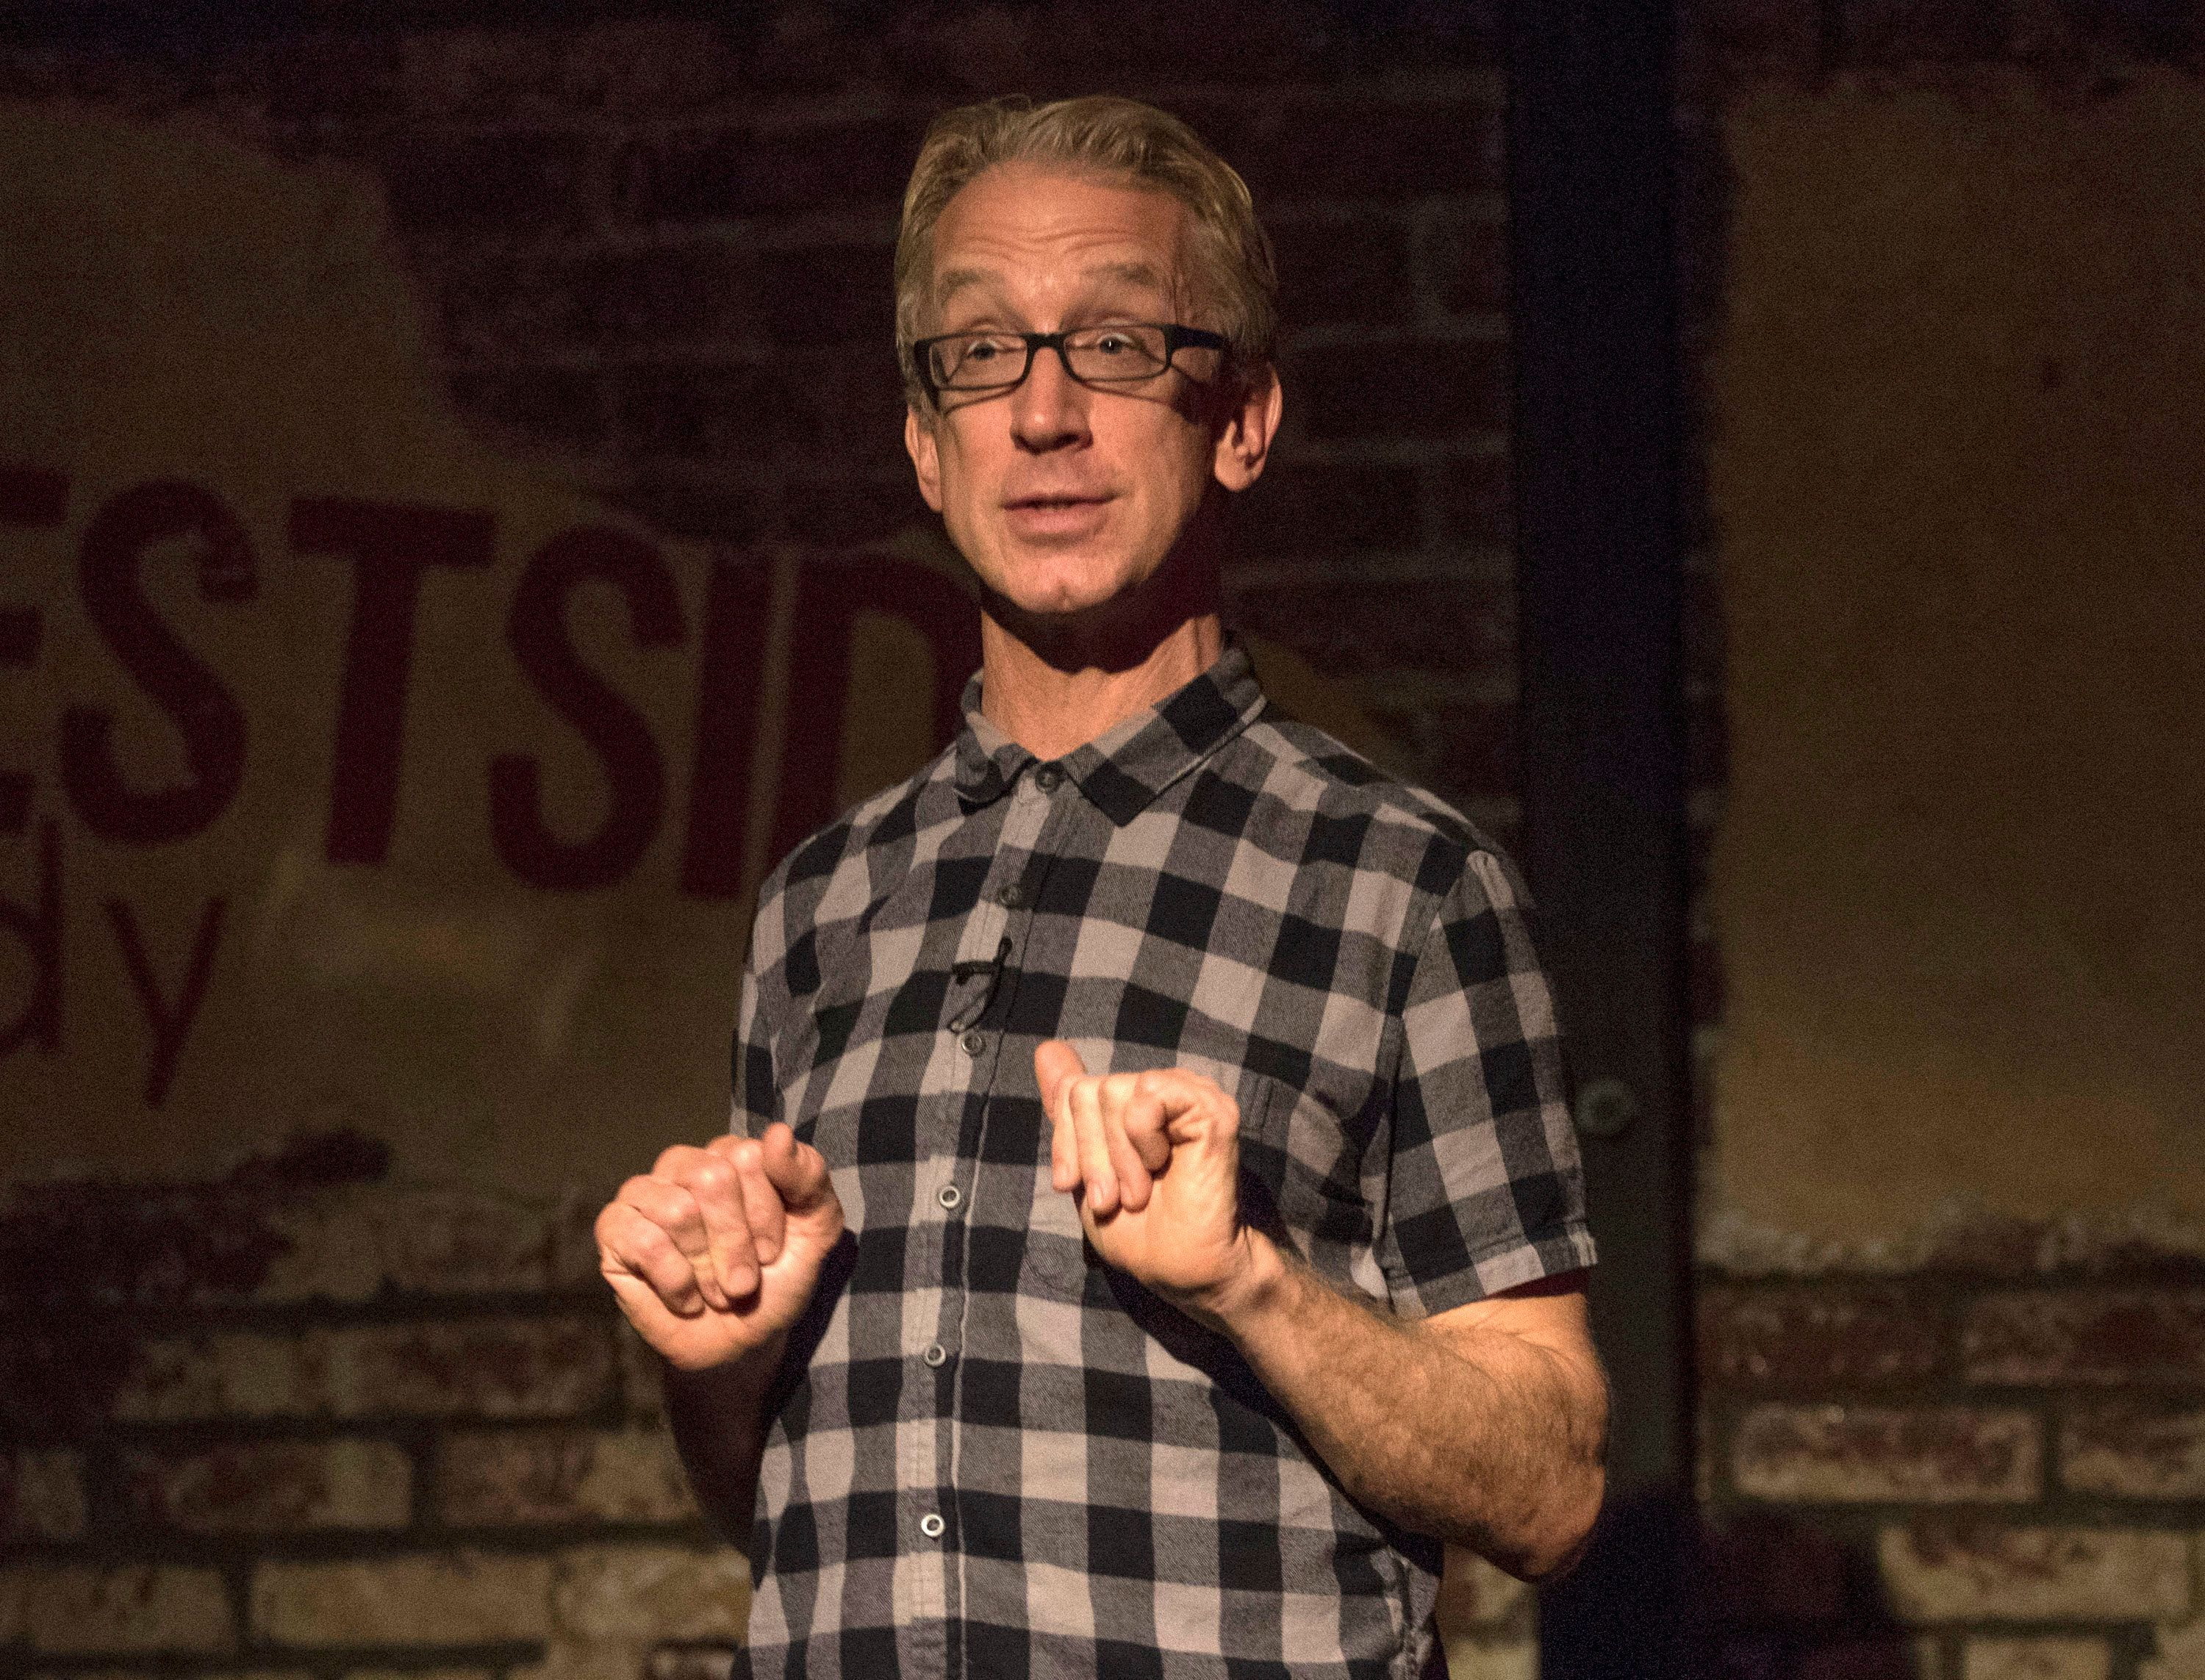 Andy Dick performs at Fun With Dick on Jan. 27, 2016, in Santa Monica, California.